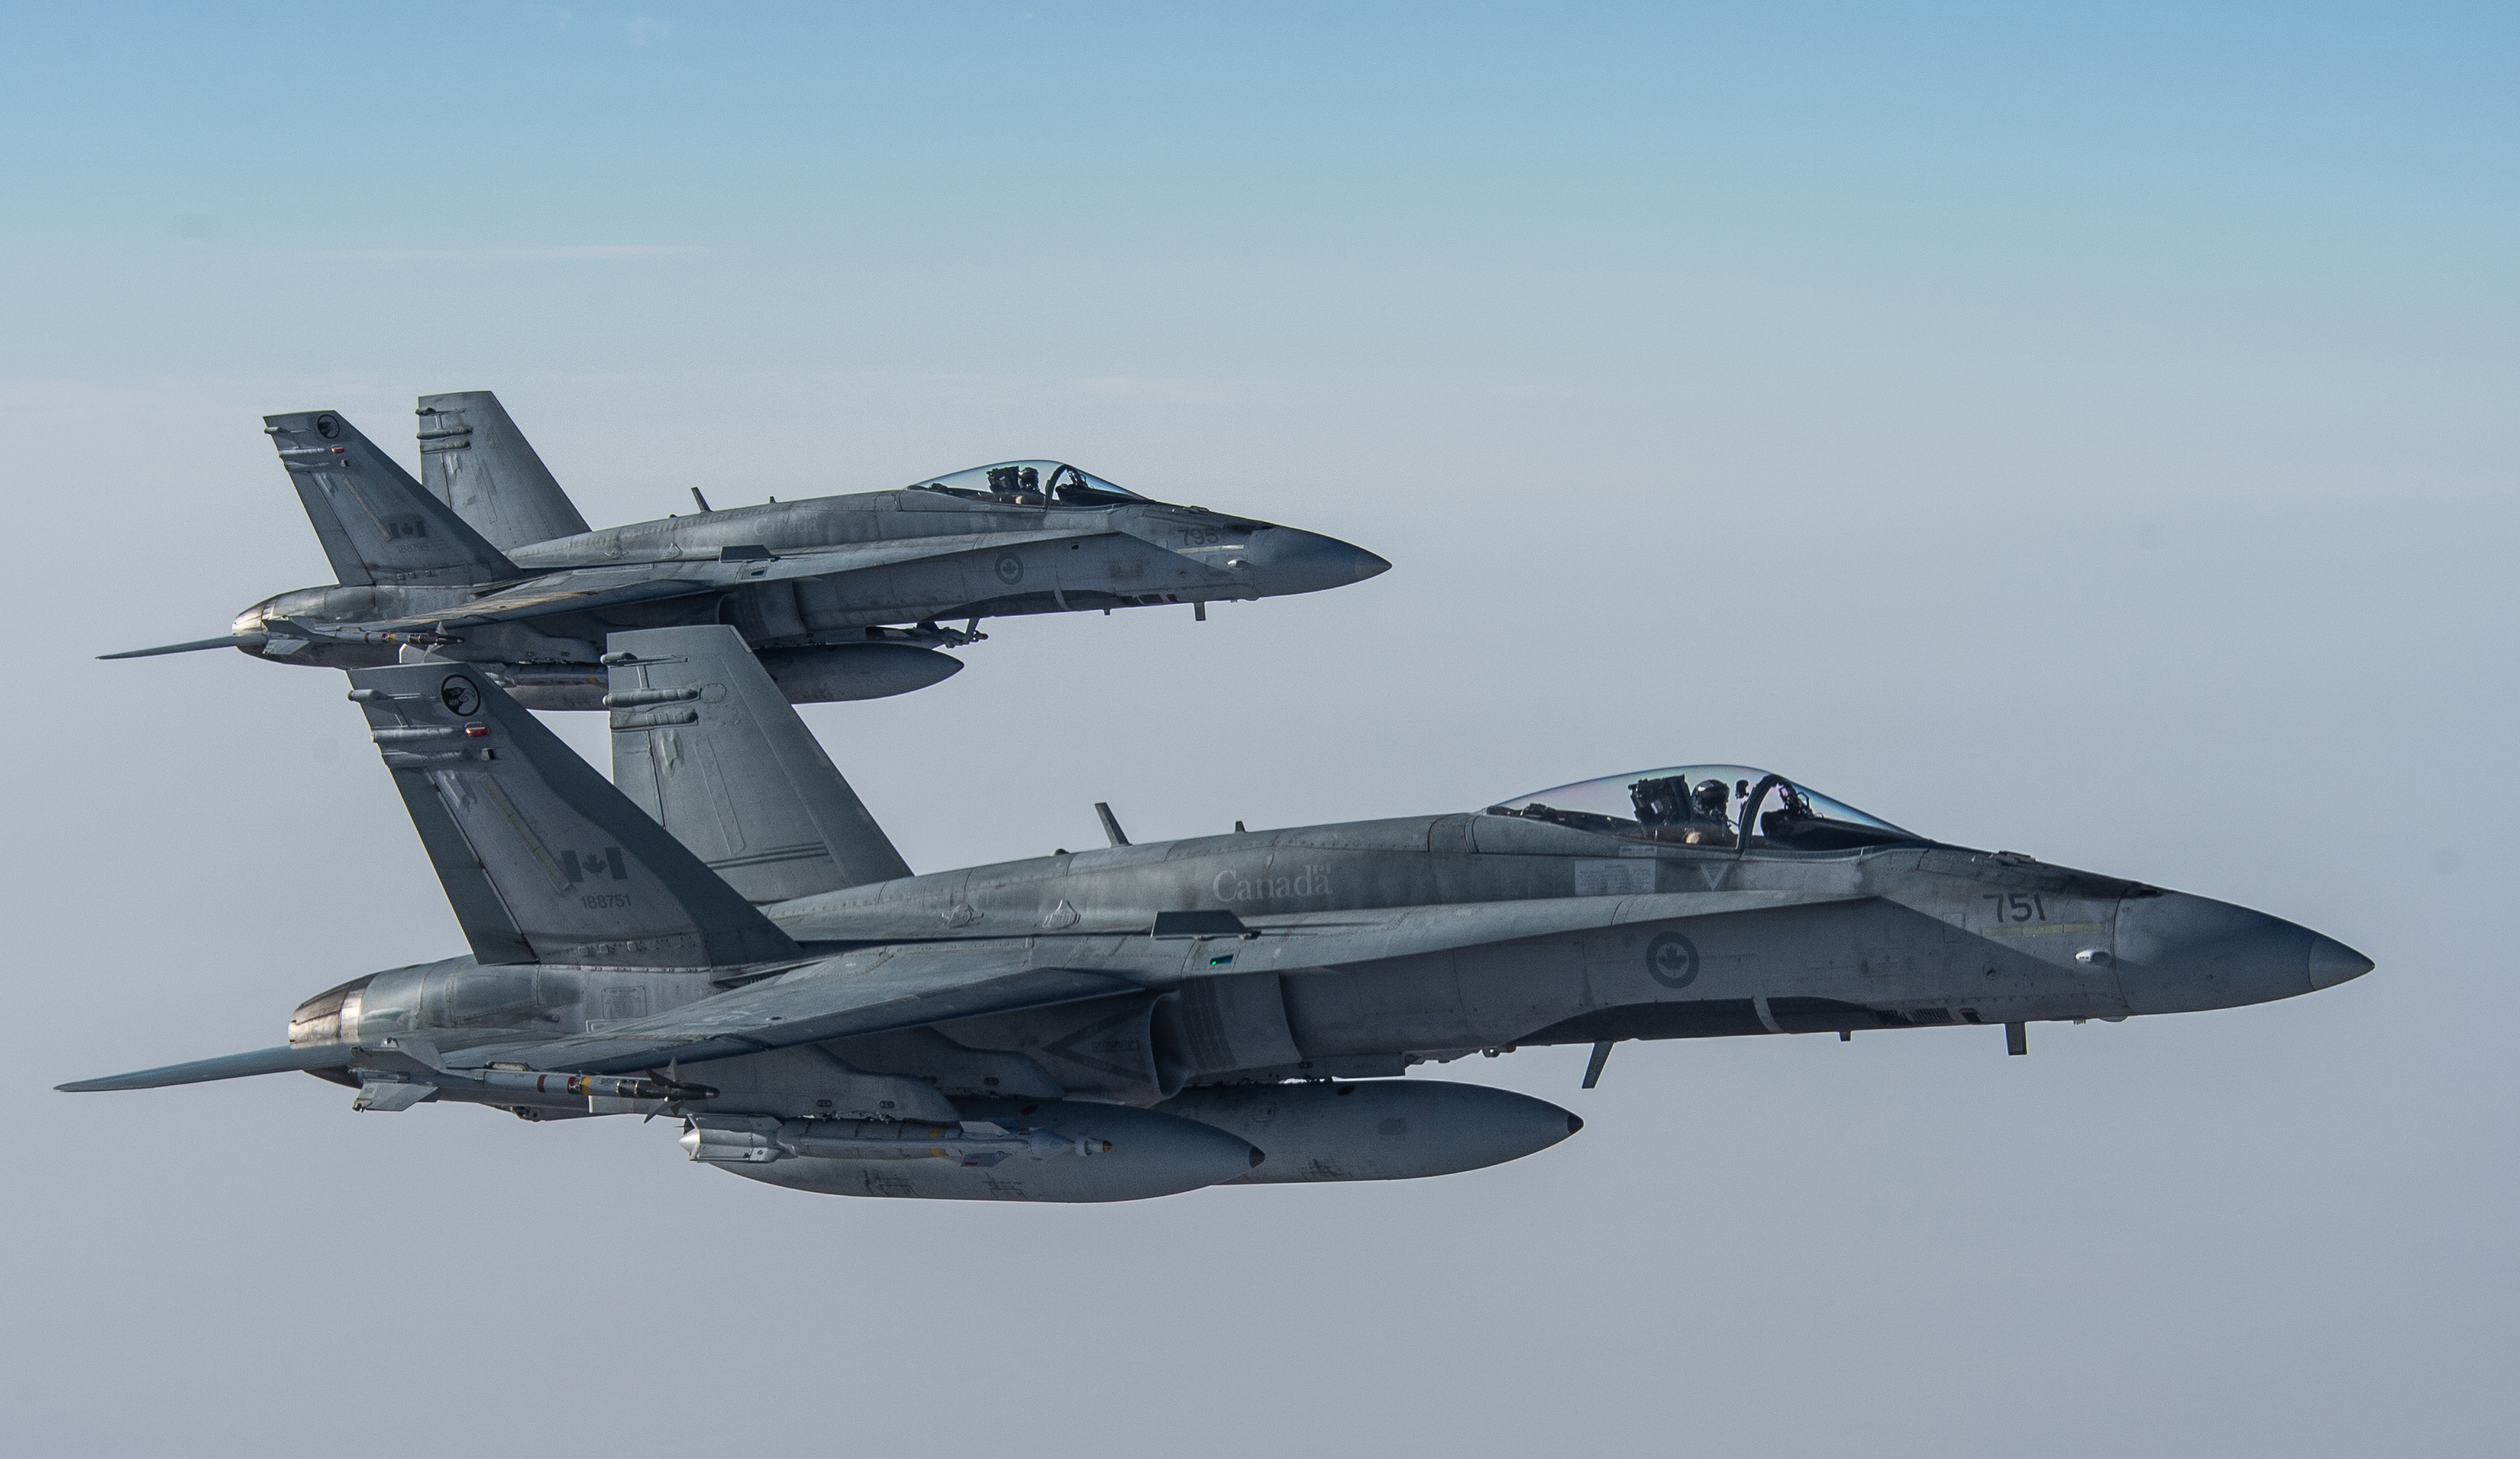 Two CF-188 Hornet fighters prepare to resume their activities after being refueled by a CC-150T Polaris on February 4, 2015 during Operation Impact. PHOTO: Canadian Forces Combat Camera, DND